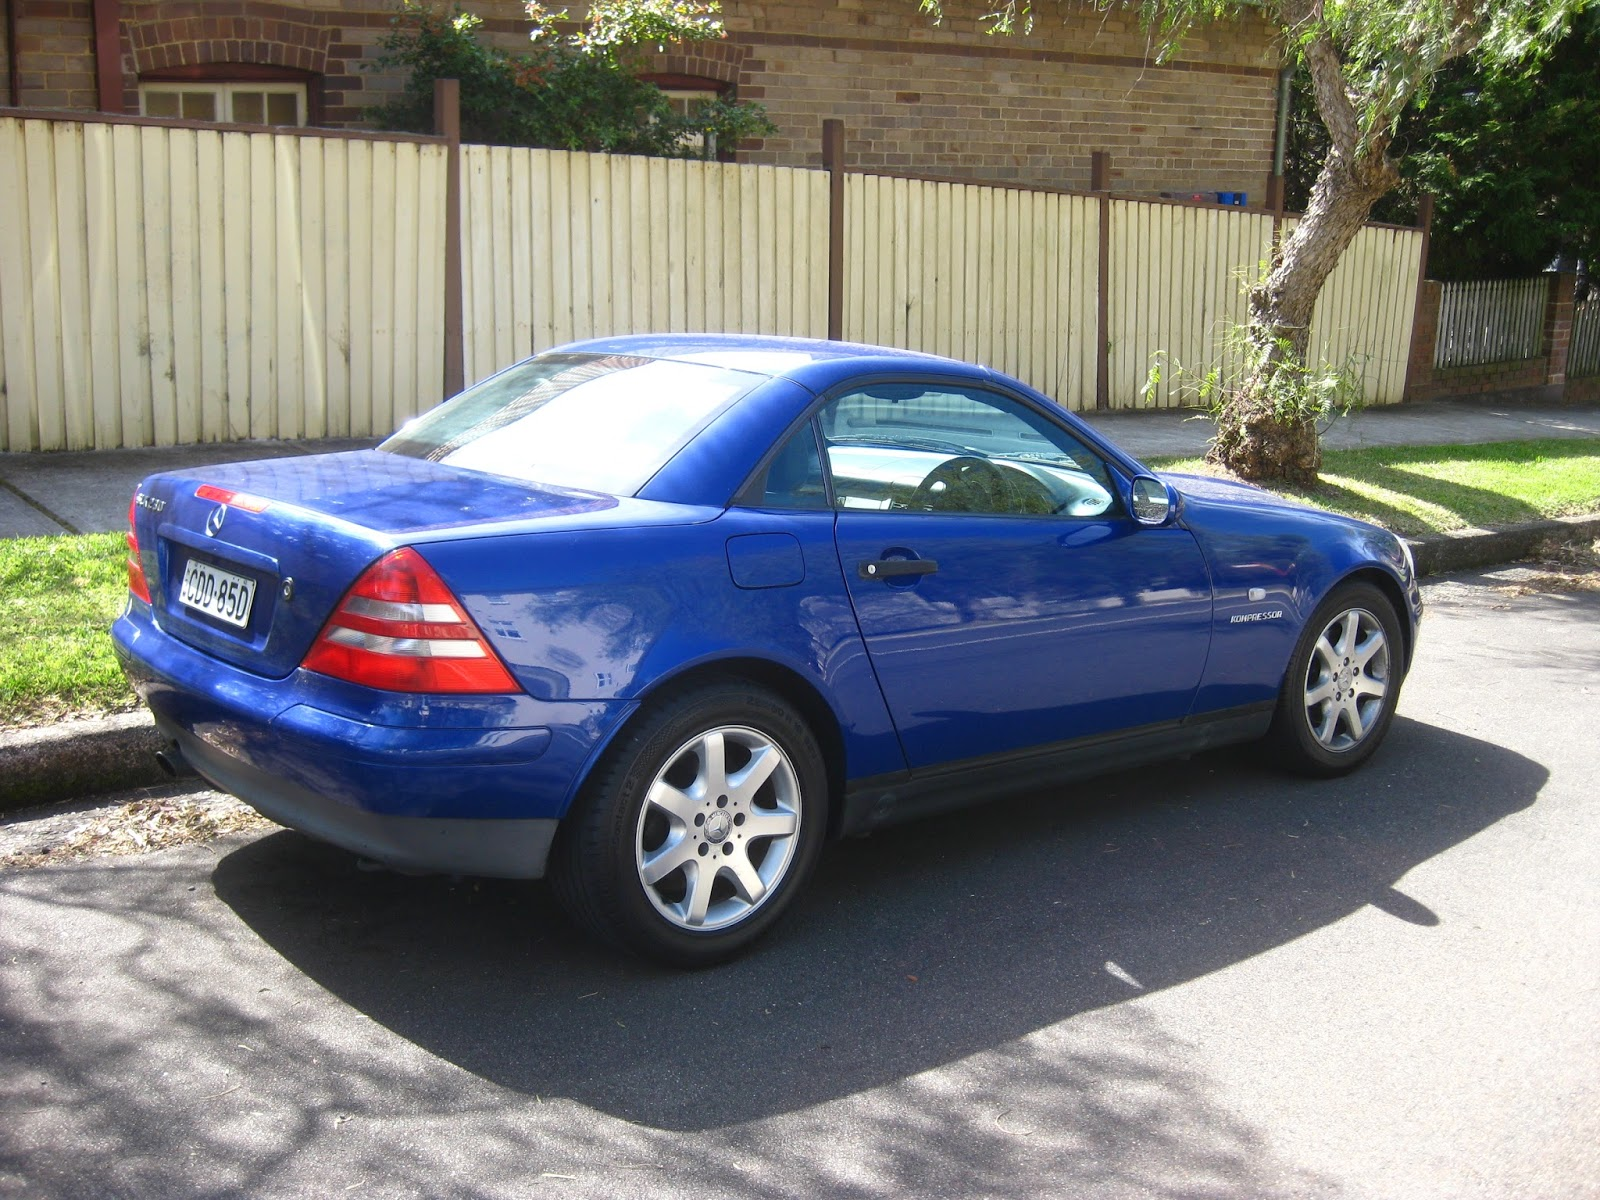 aussie old parked cars 1997 mercedes benz r170 slk 230. Black Bedroom Furniture Sets. Home Design Ideas